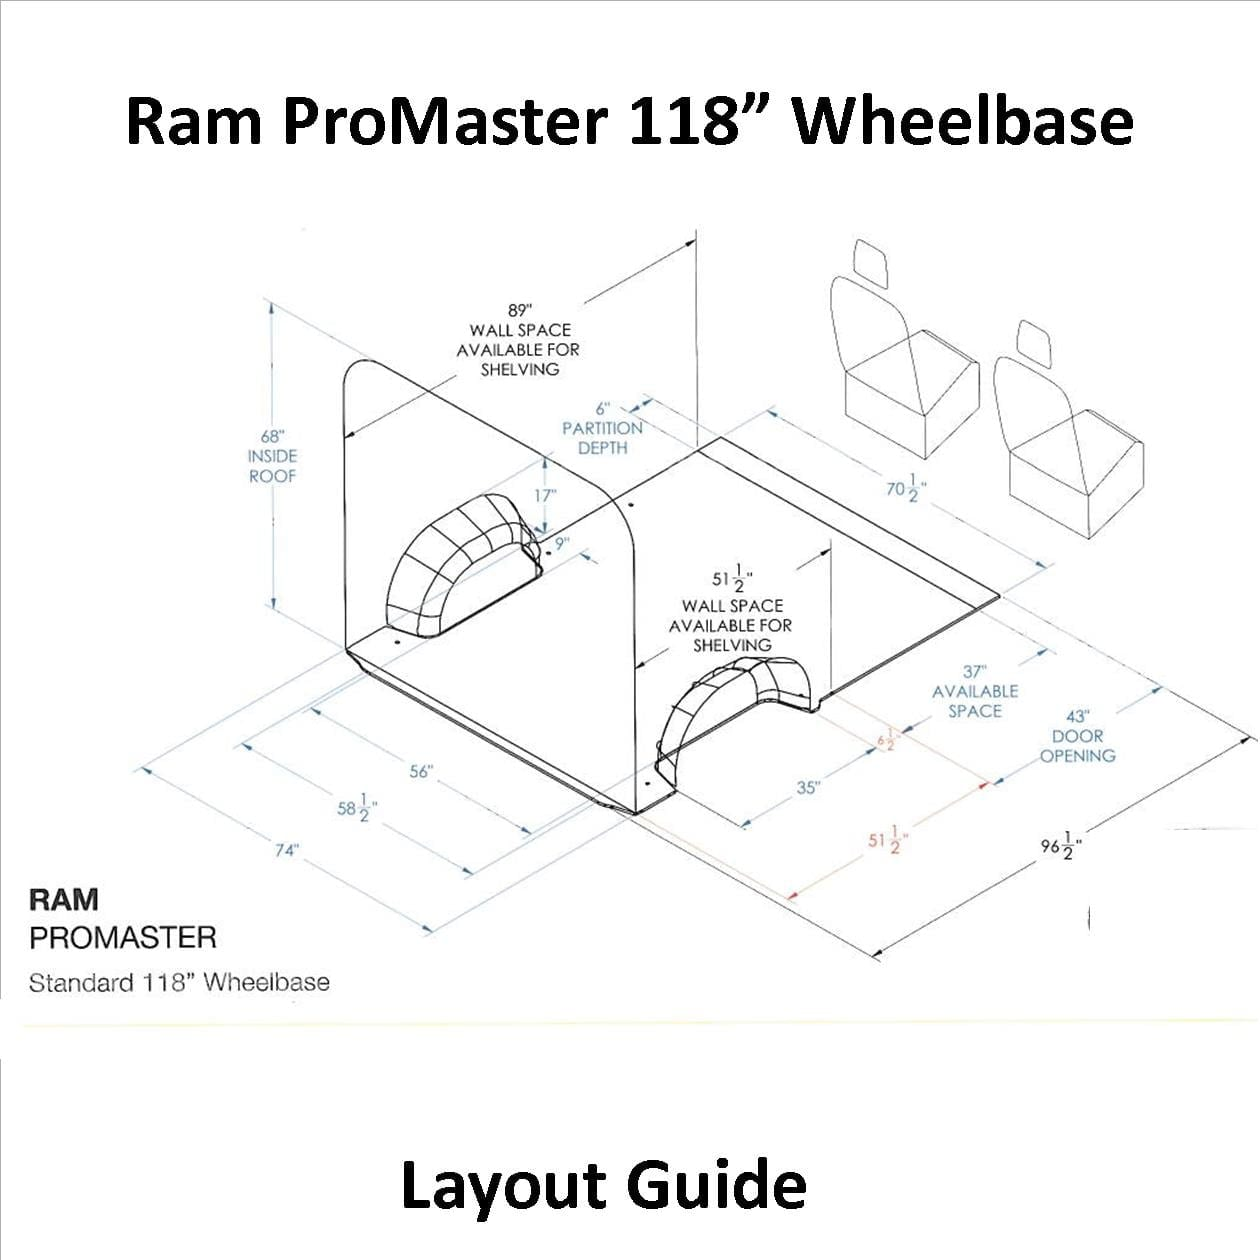 Ram Promaster Layout Guide 118 Wb